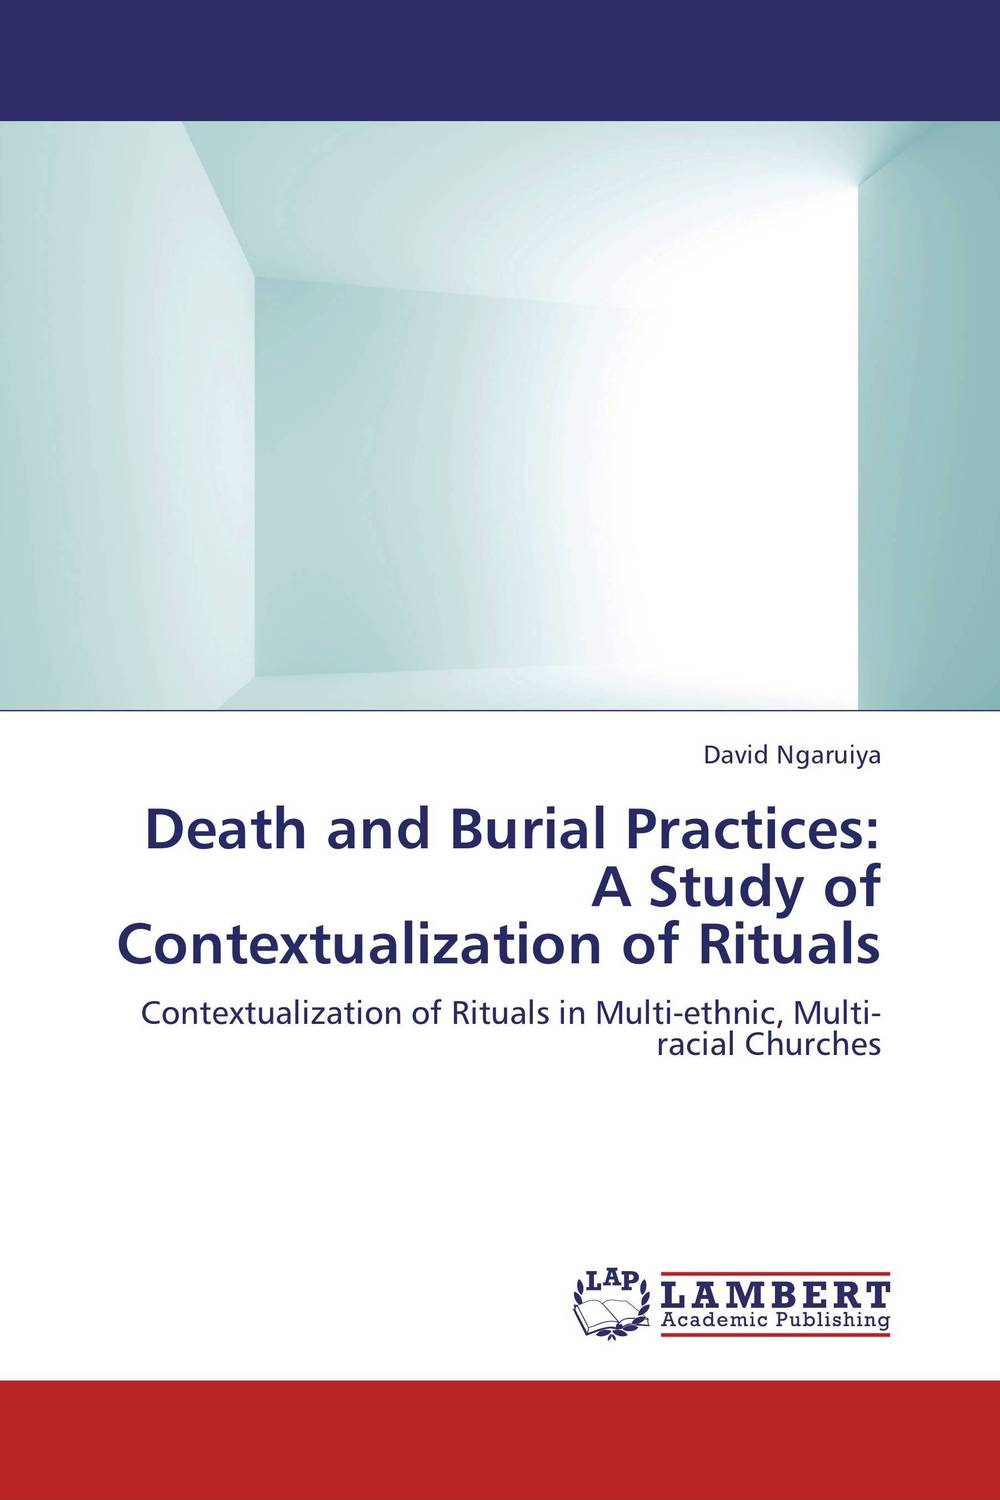 Death and Burial Practices: A Study of Contextualization of Rituals scream street a sneer death experience